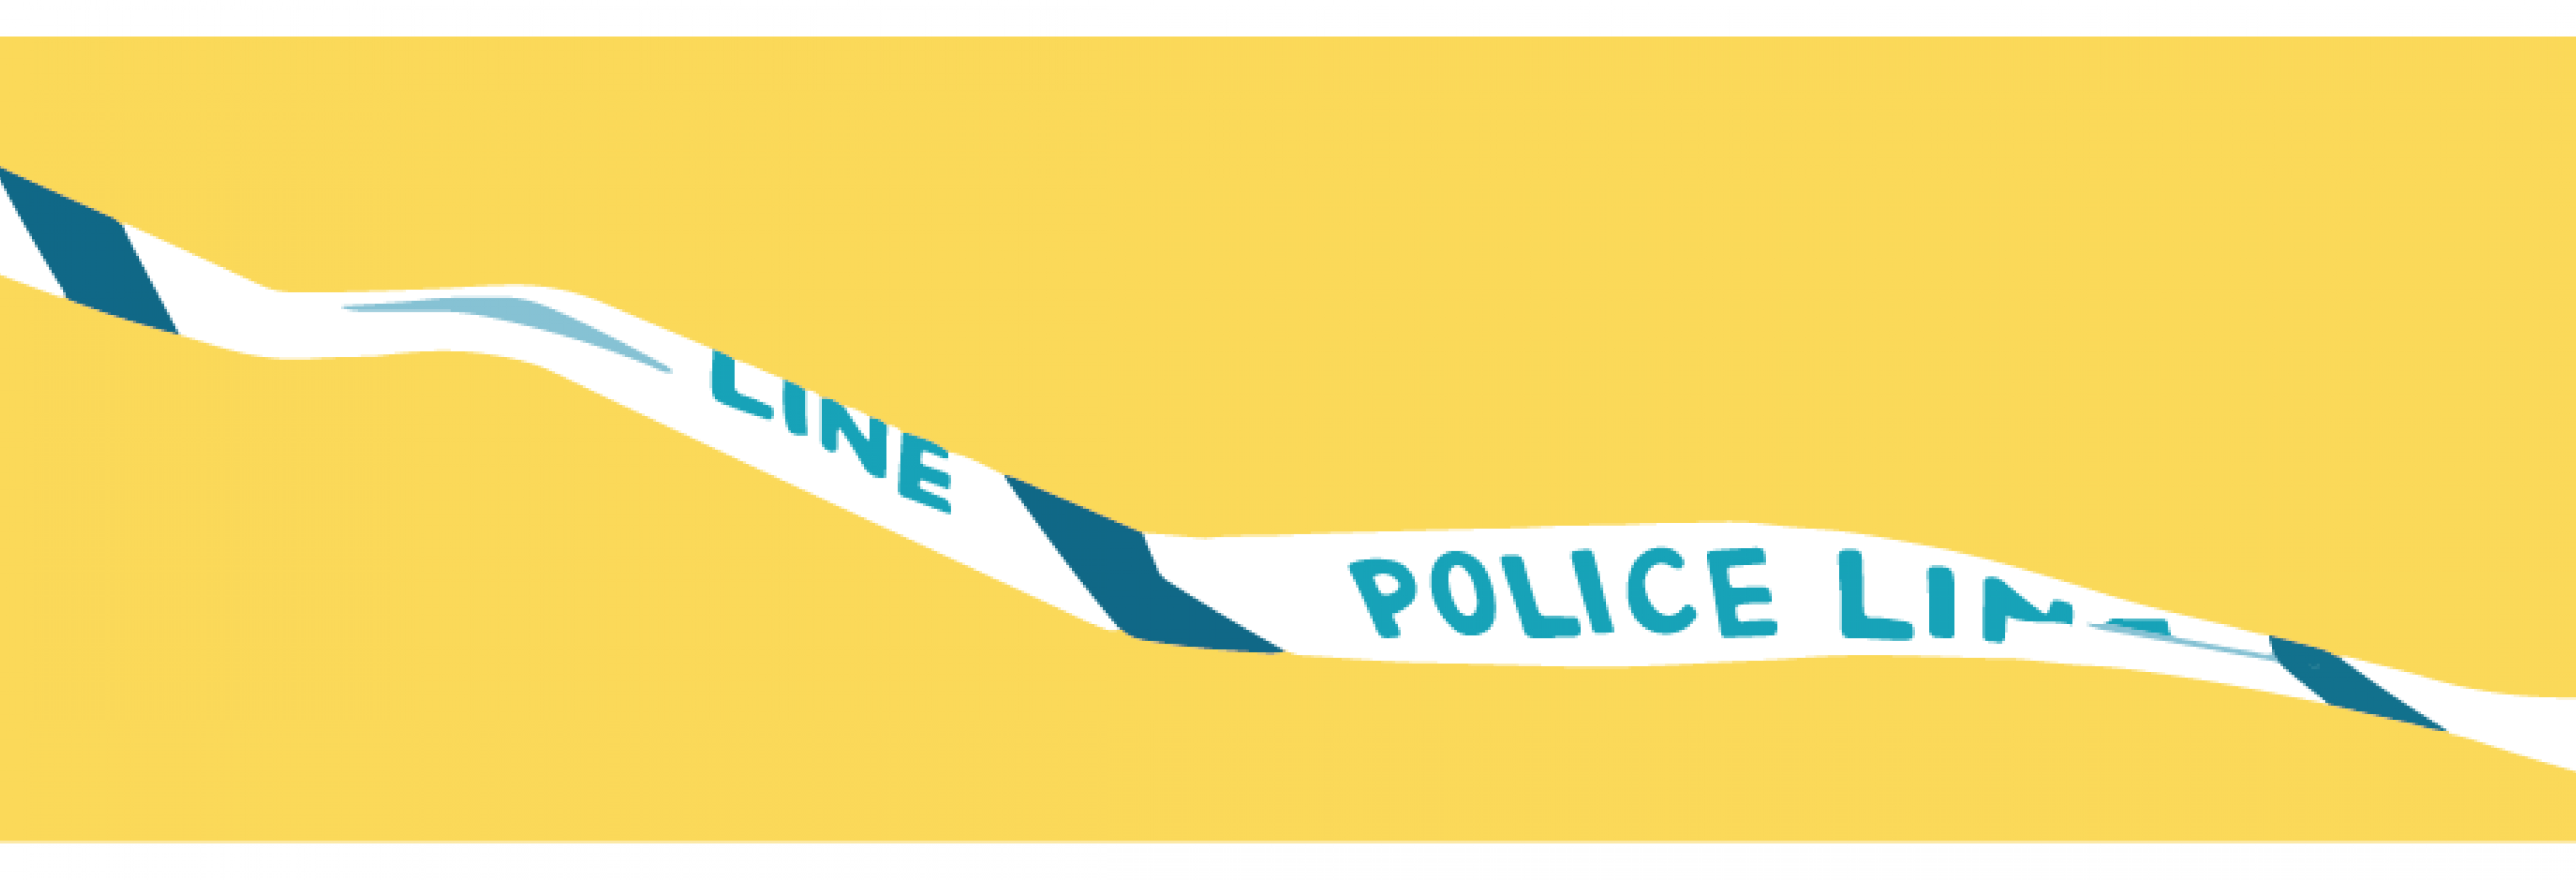 Illustration of a blue and white 'POLICE LINE' tape on a yellow background